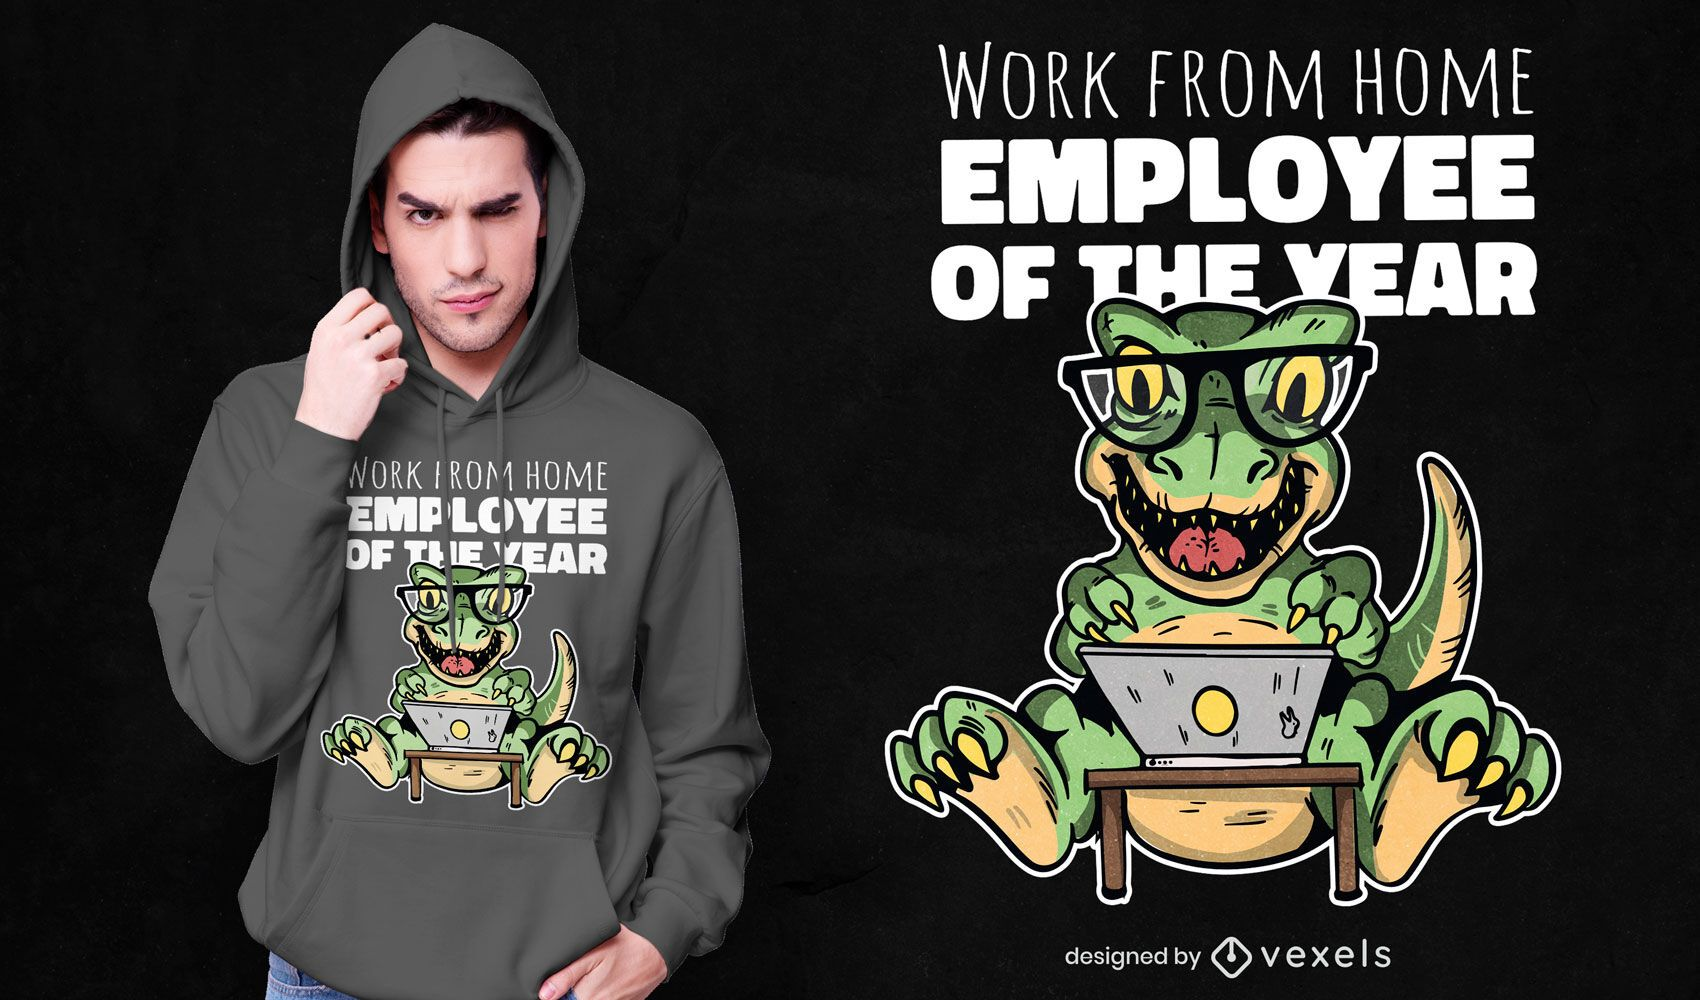 Employee of the year t-shirt design